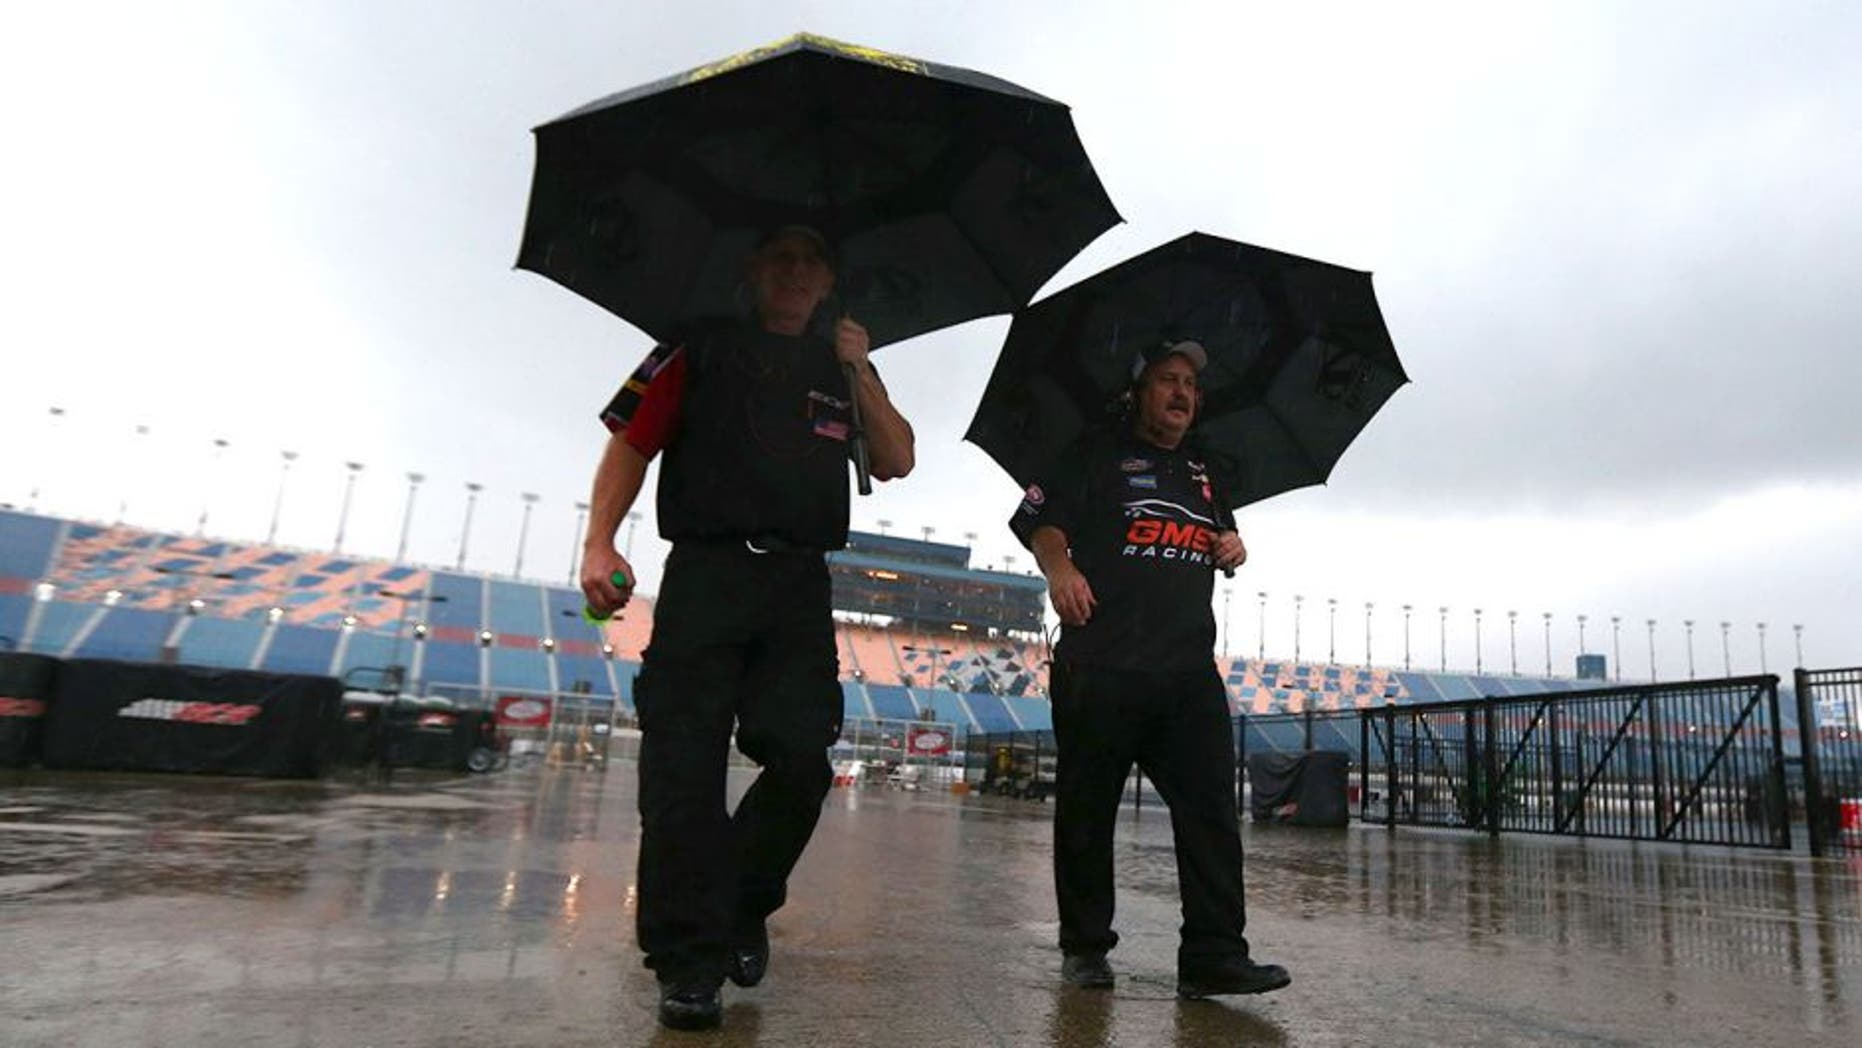 JOLIET, IL - SEPTEMBER 18: Crew members walk off pit road under heavy rain during qualifying for the NASCAR Camping World Truck Series American Ethanol E15 225 at Chicagoland Speedway on September 18, 2015 in Joliet, Illinois. (Photo by Sarah Crabill/NASCAR via Getty Images)